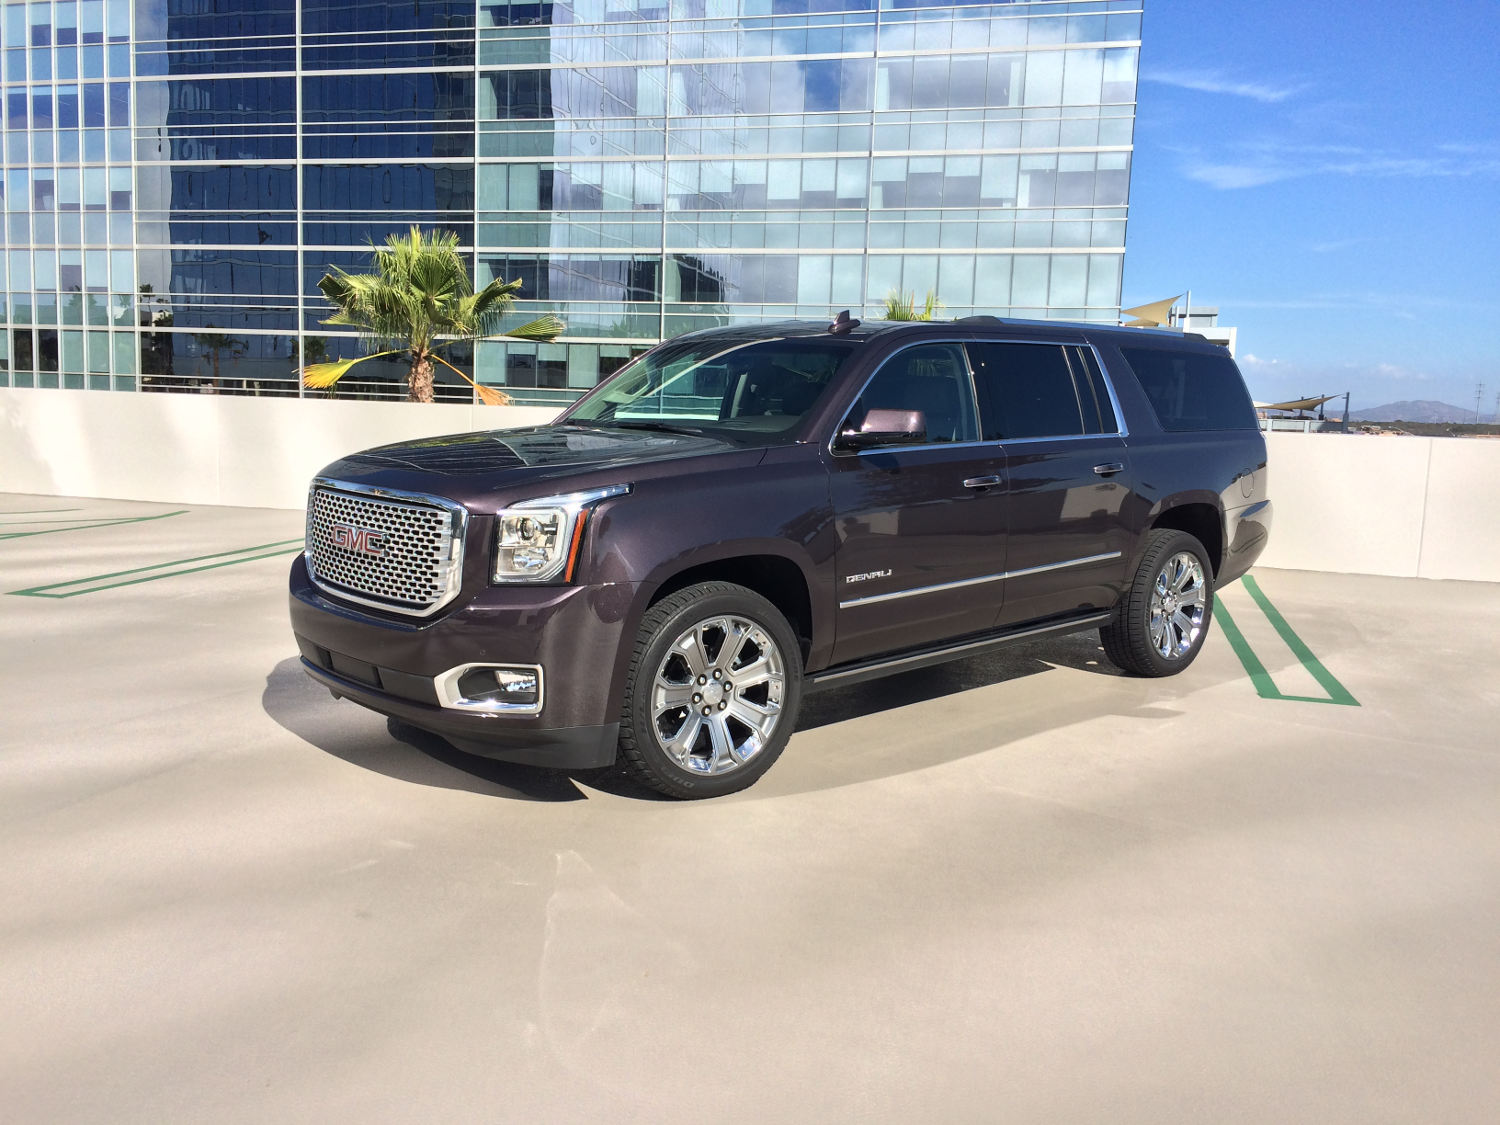 comparison gmc yukon xl denali suv 2015 vs chevrolet. Black Bedroom Furniture Sets. Home Design Ideas